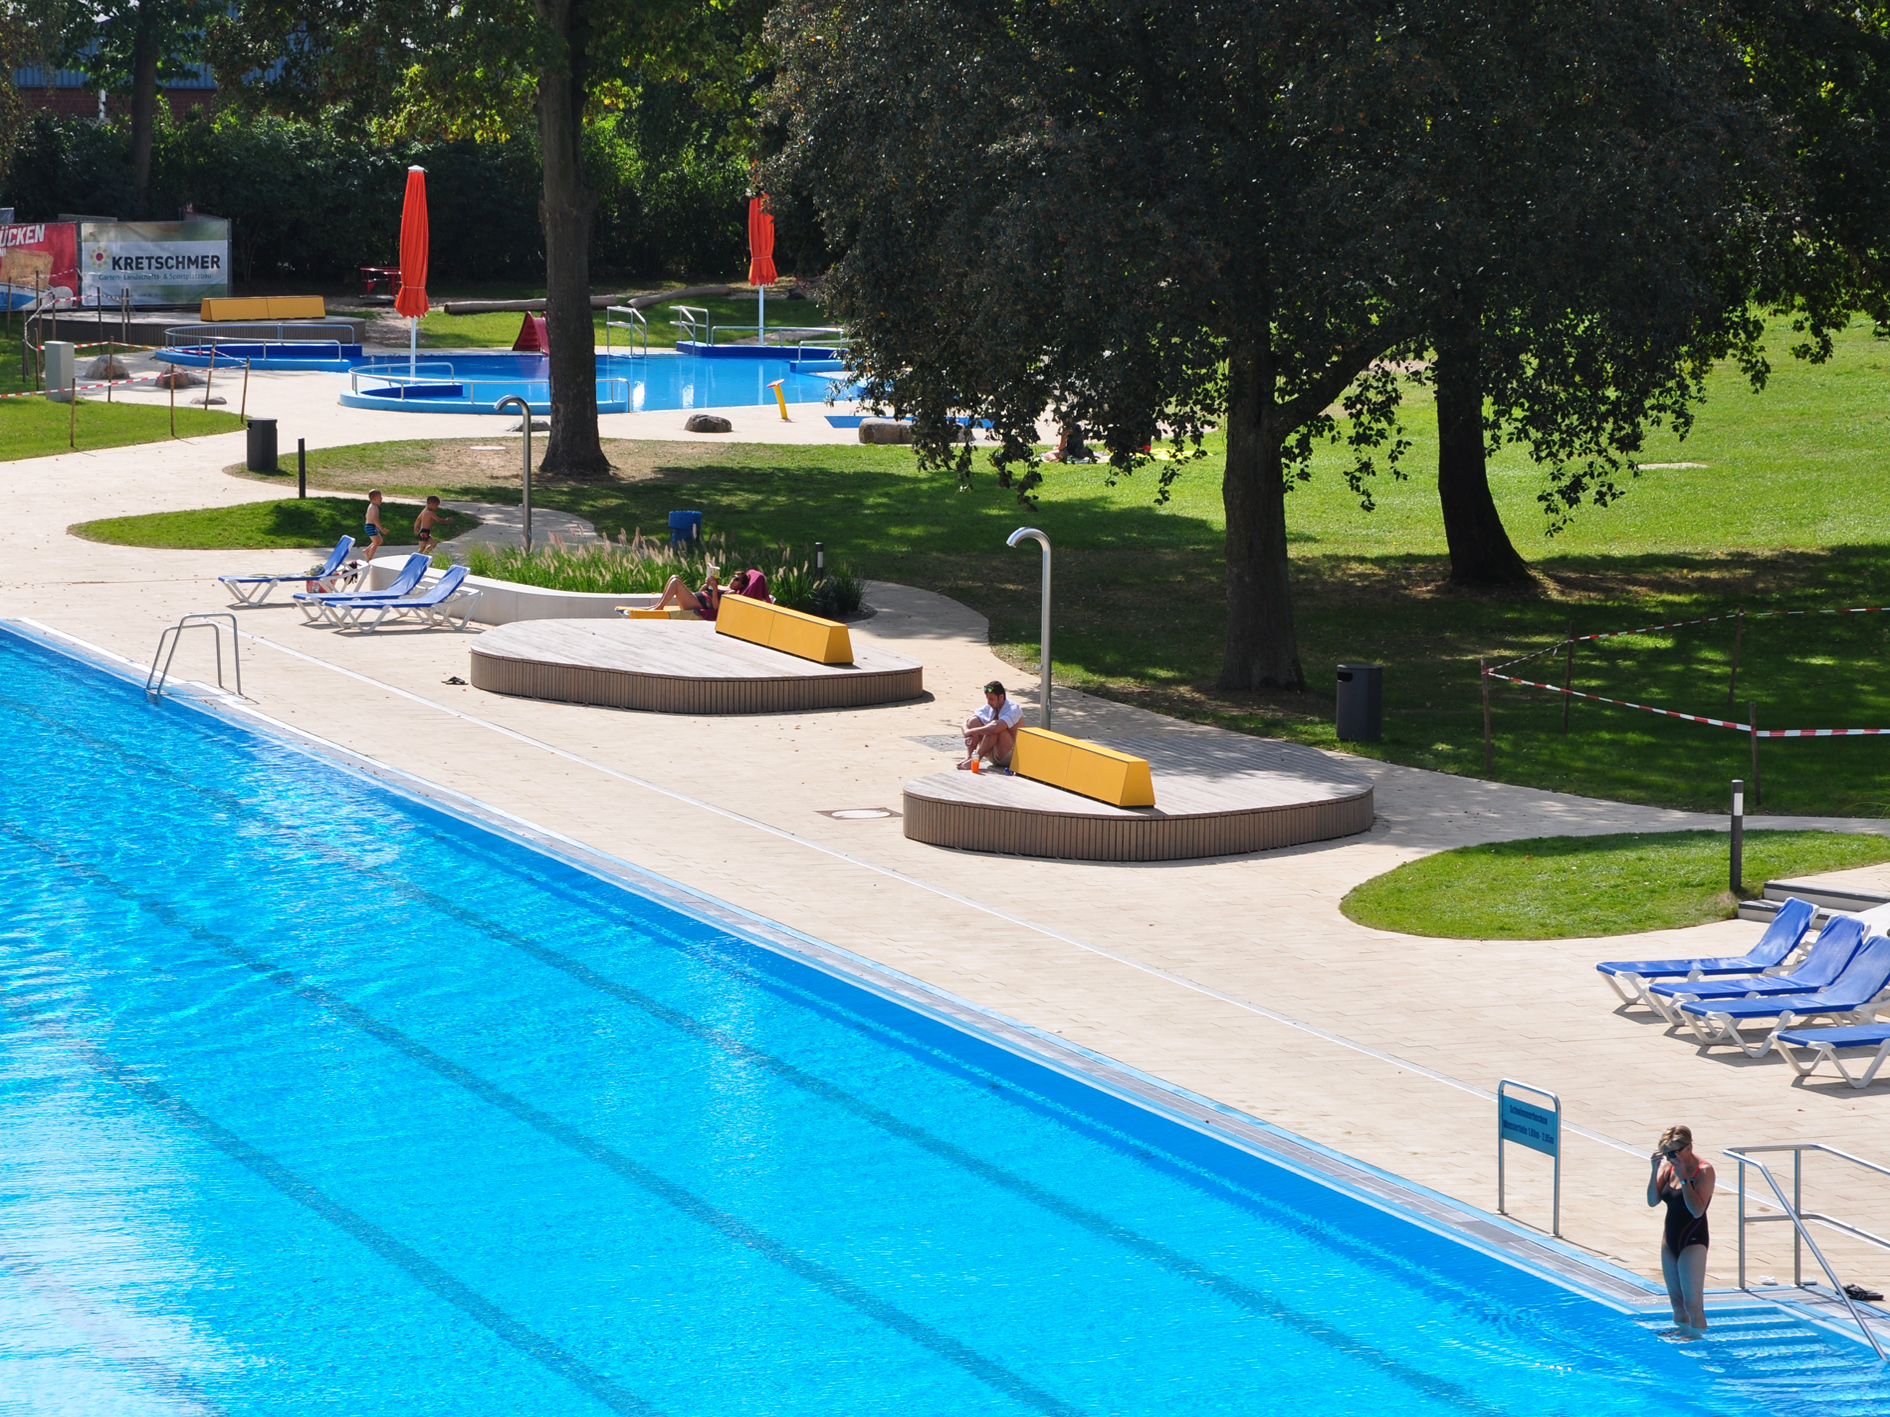 1511_Freibad_Bad_Salzdetfurth_17.jpg